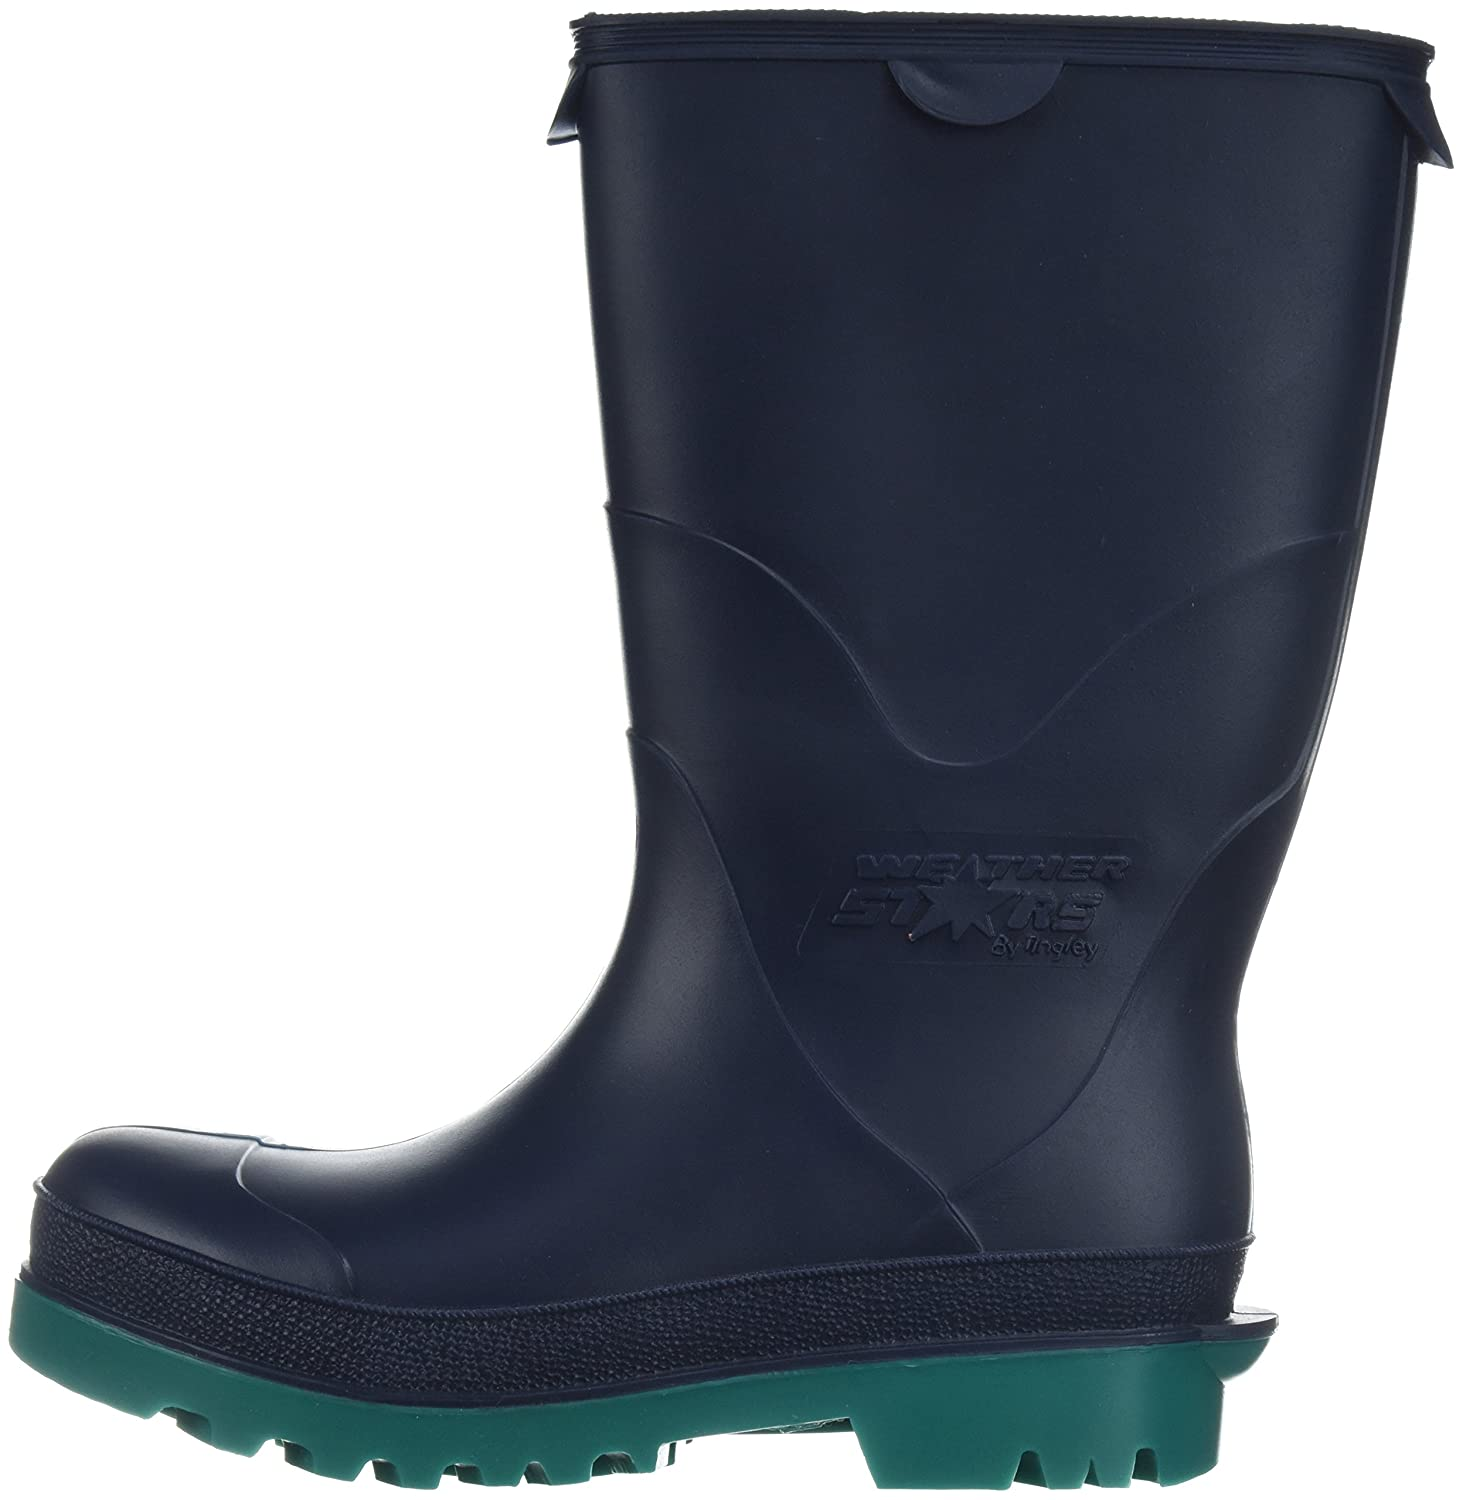 STORMTRACKS 11768.04 Youths Boot Size 04 Blue//Green